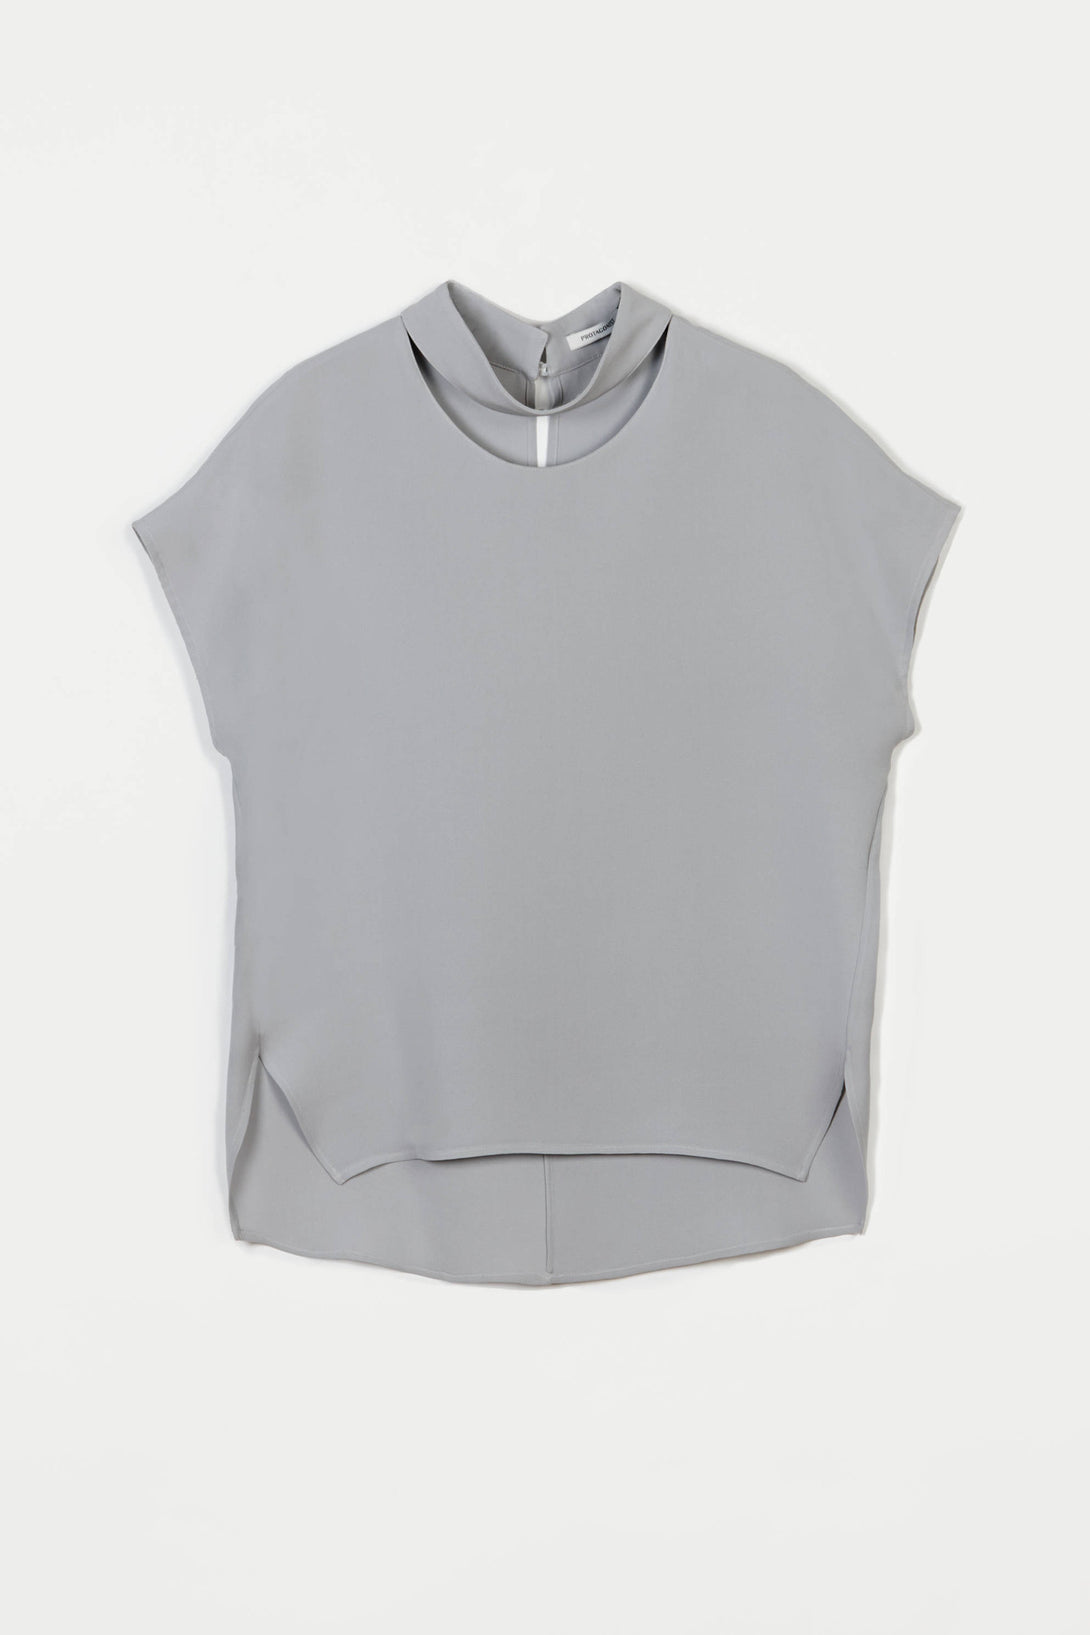 Shirt 04 Sleeveless Collarbone Blouse - Ash